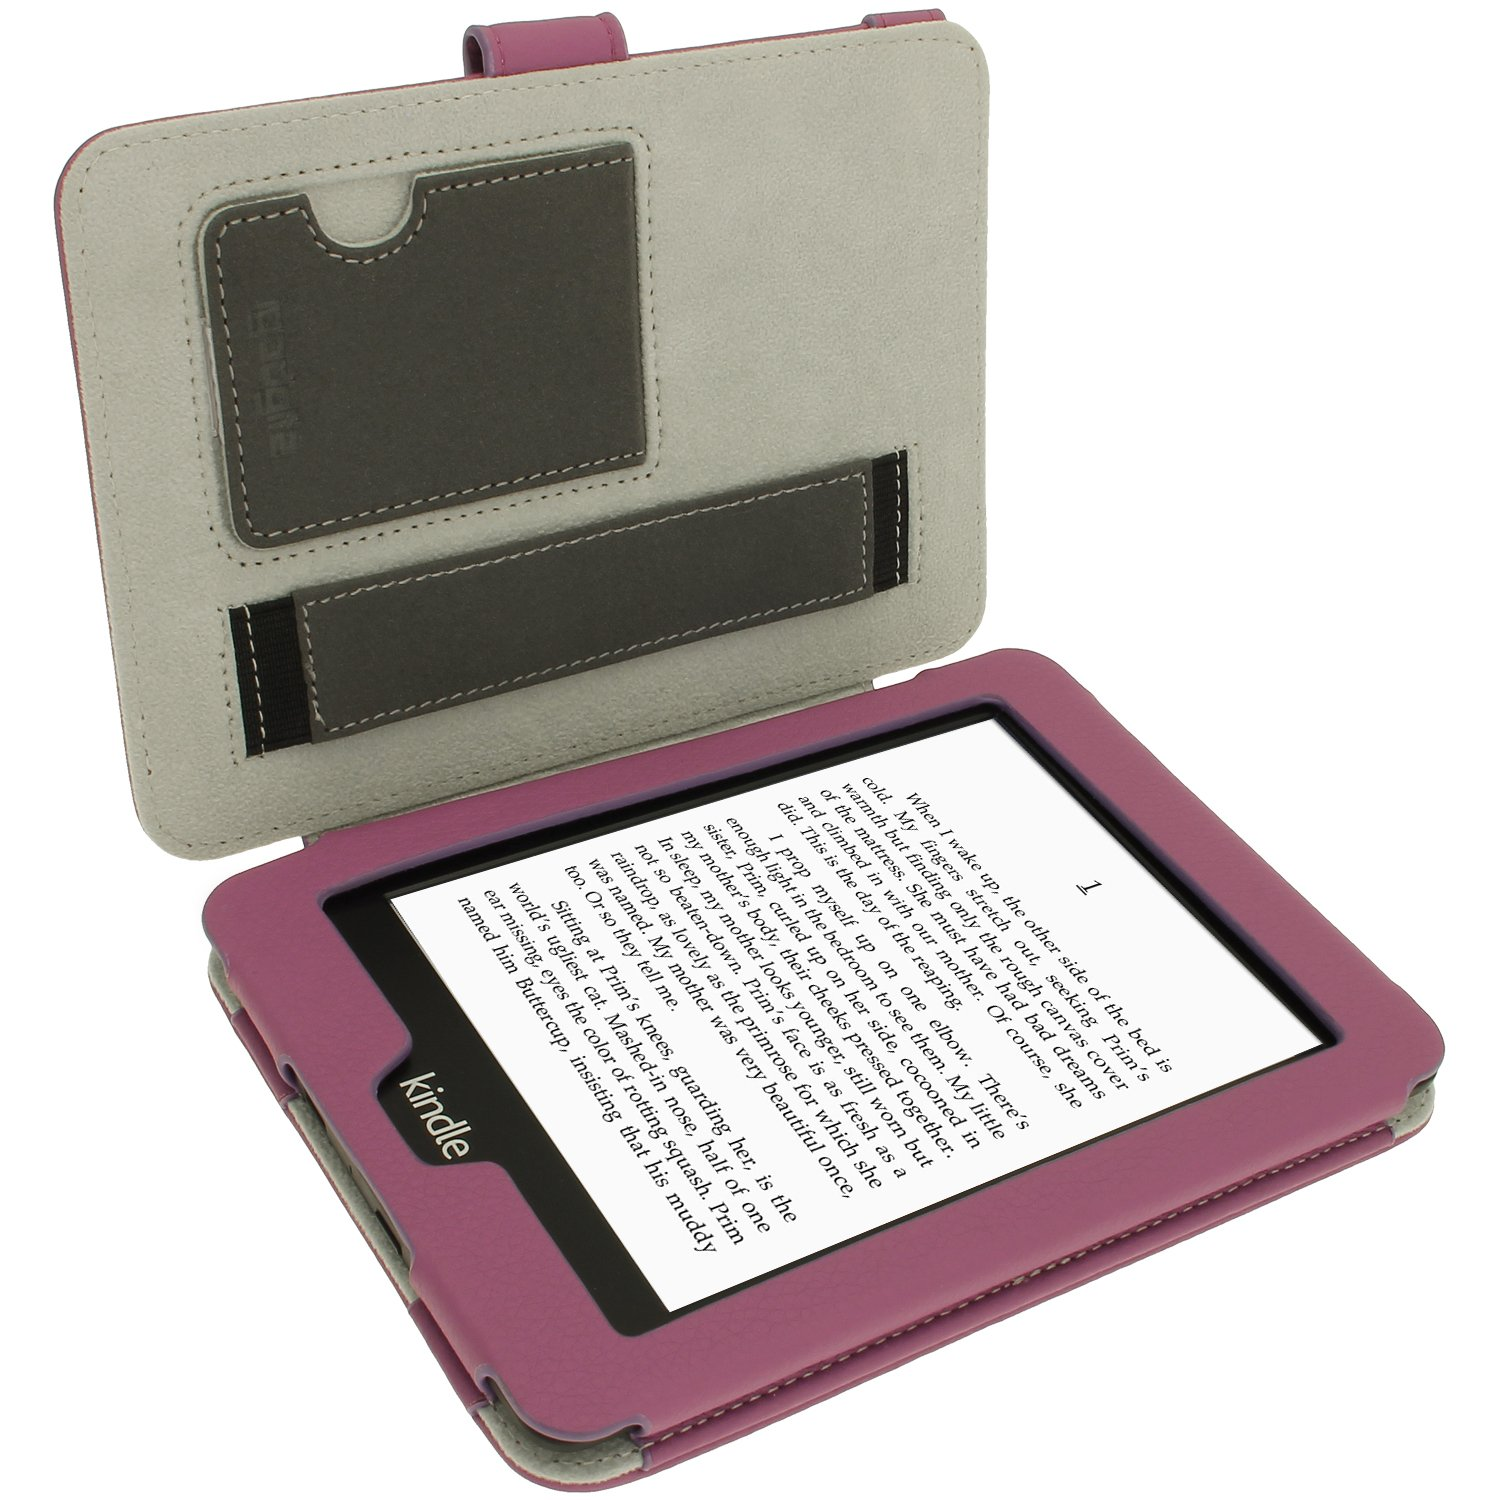 iGadgitz Purple PU 'Bi-View' Leather Case Cover for Amazon Kindle Paperwhite 2015 2014 2013 2012 With Sleep/Wake Function & Integrated Hand Strap by igadgitz (Image #4)